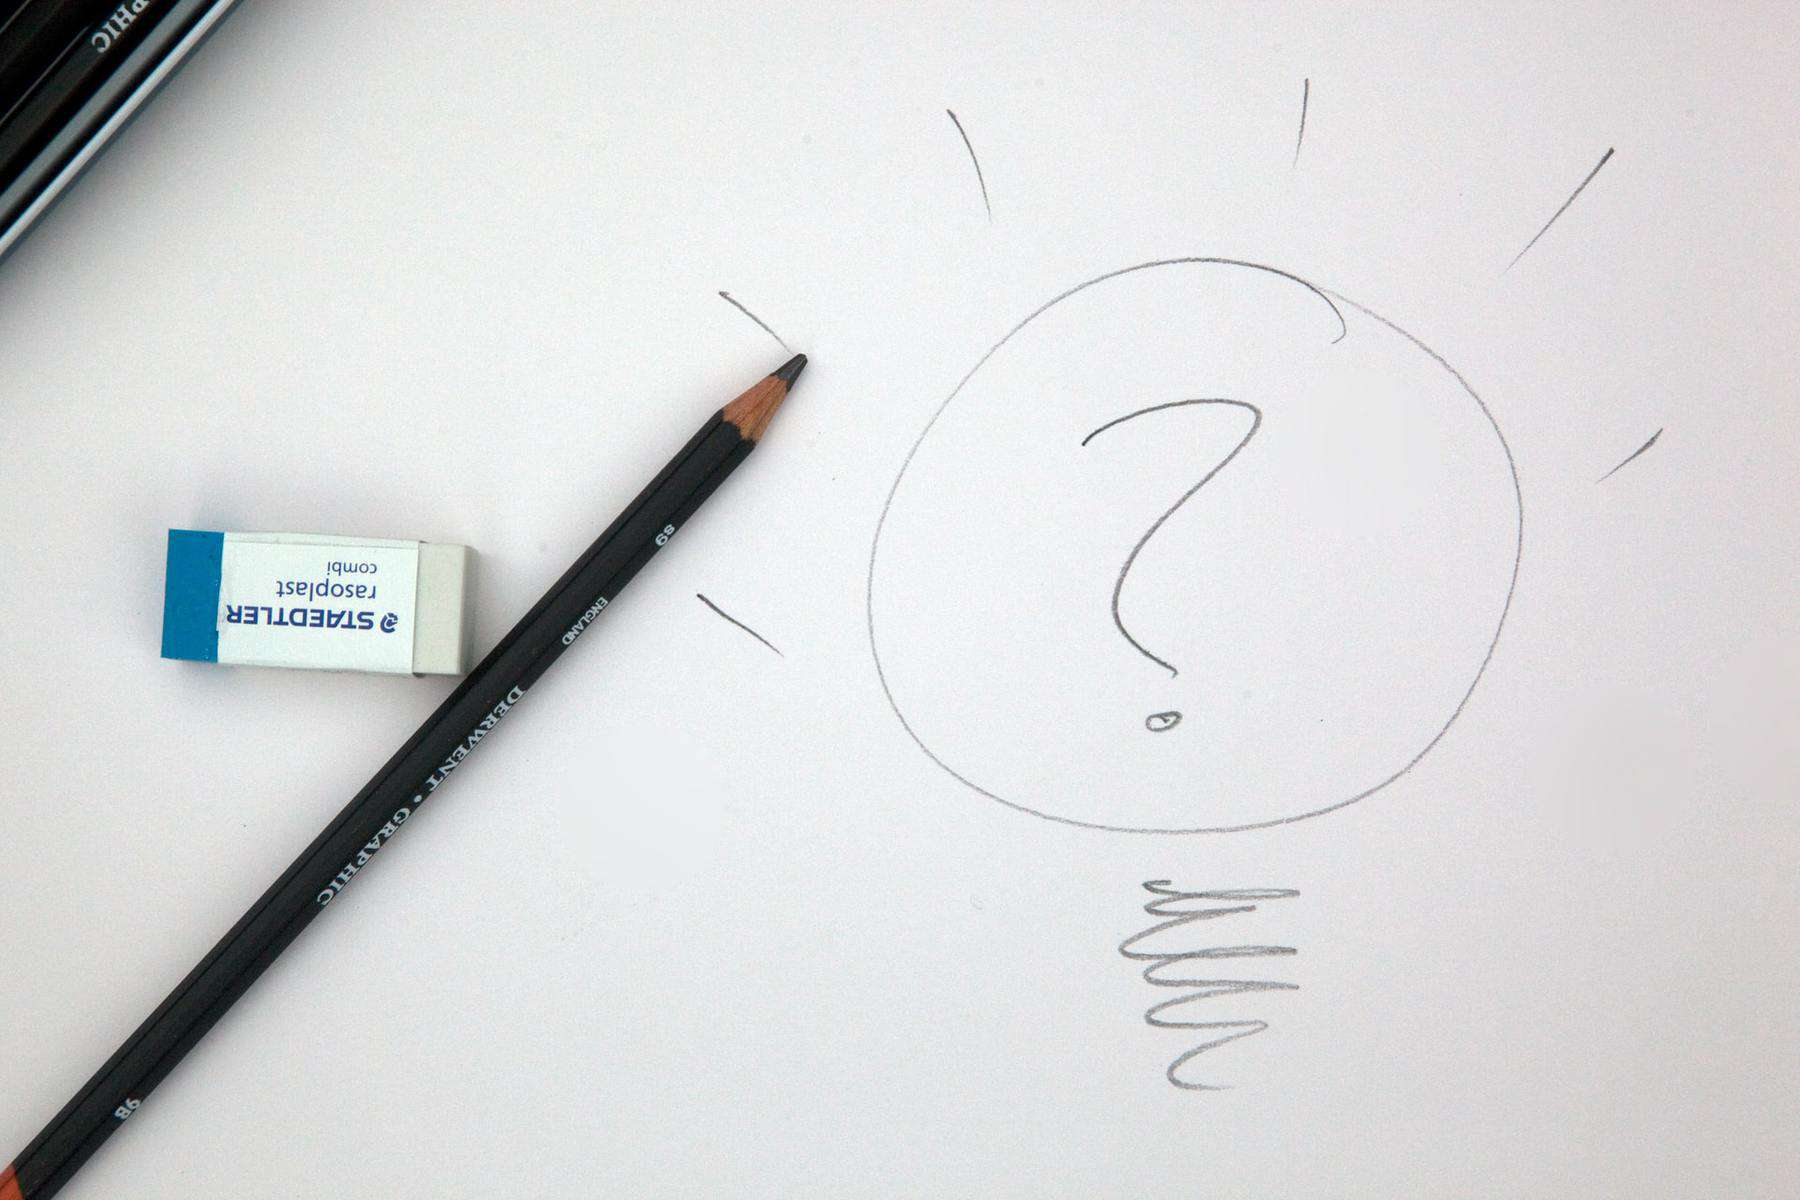 Question mark drawn on paper